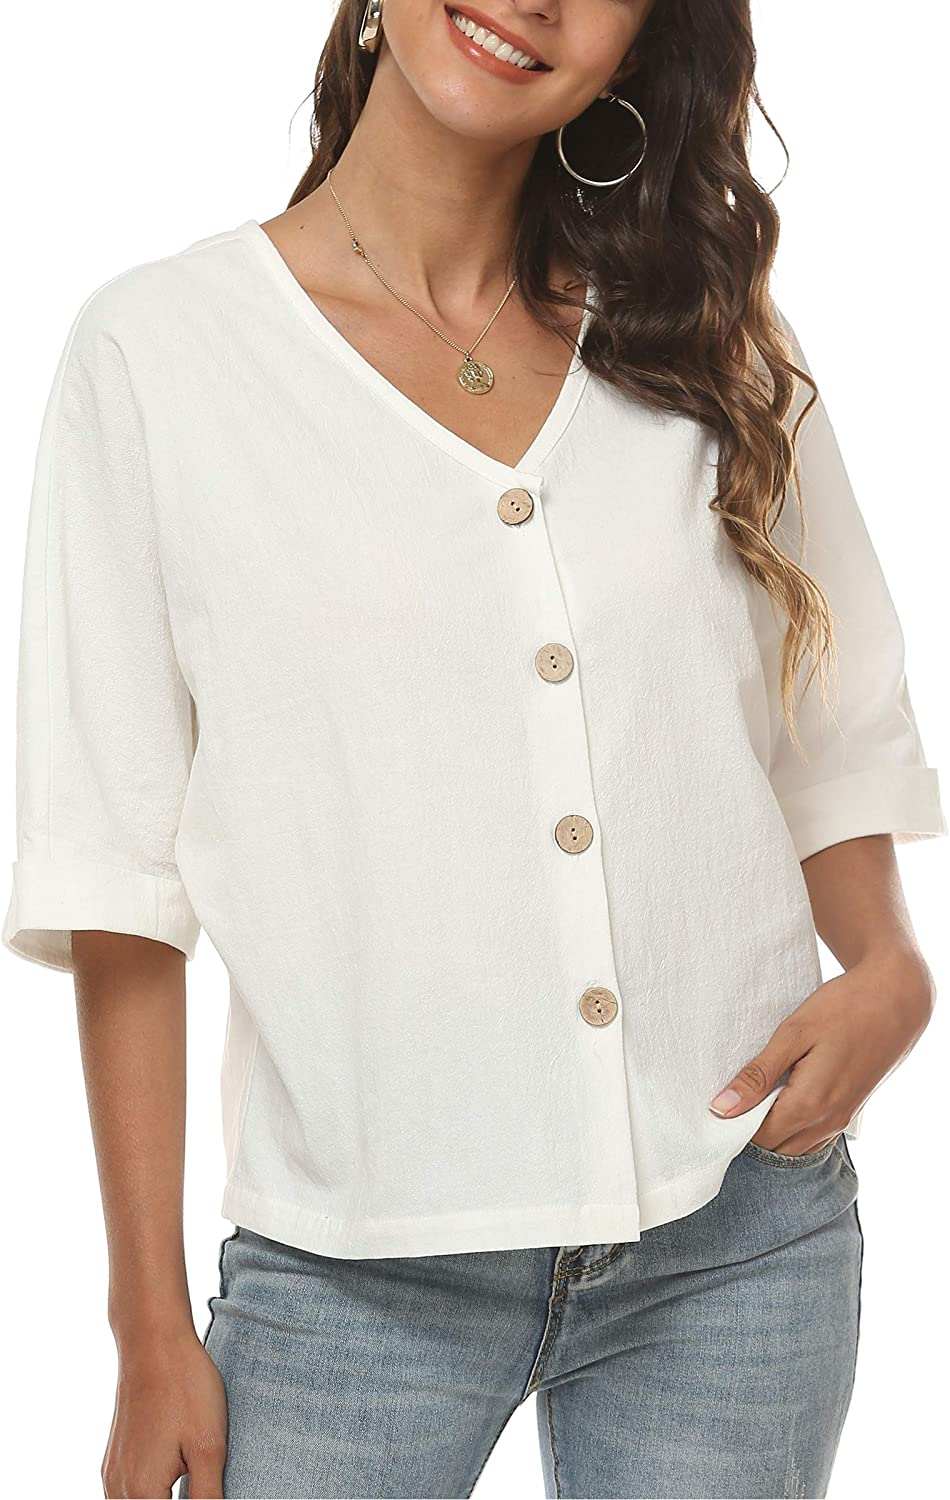 LNX Womens Linen Tops Button Down V Neck Half Cuffed Sleeve Two Wear Casual Summer T Shirts (Large, White)